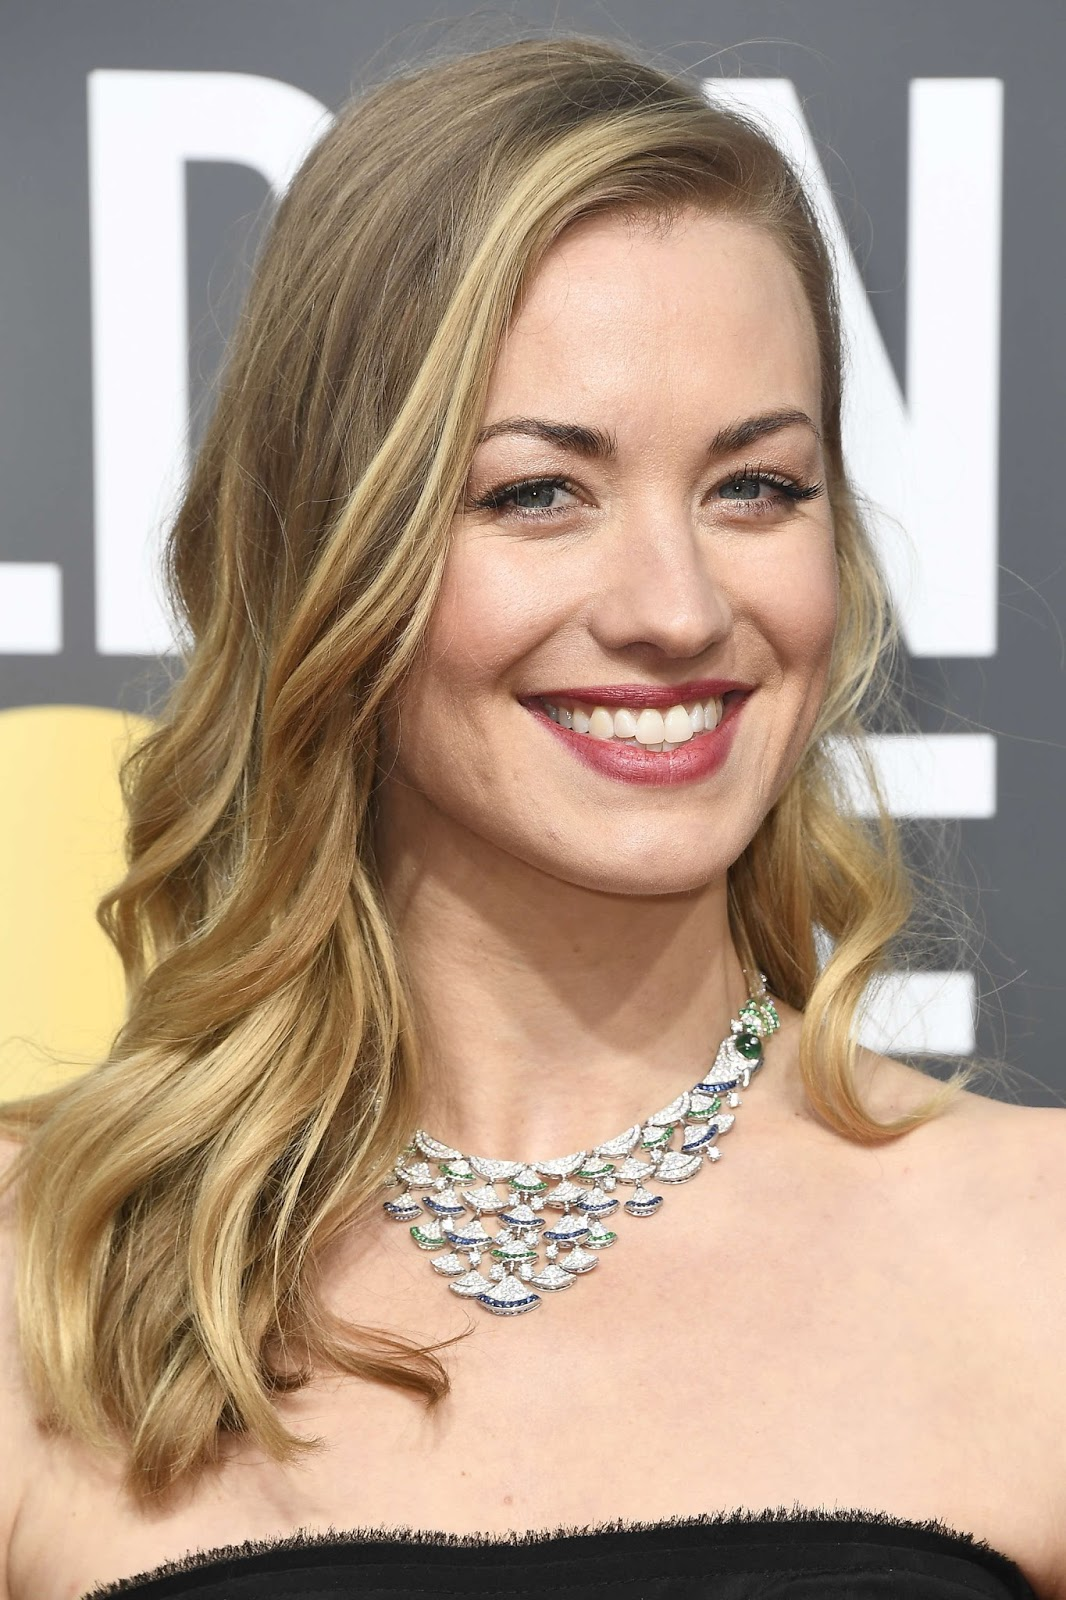 Yvonne Strahovski Posing at the Golden Globe Awards 2018